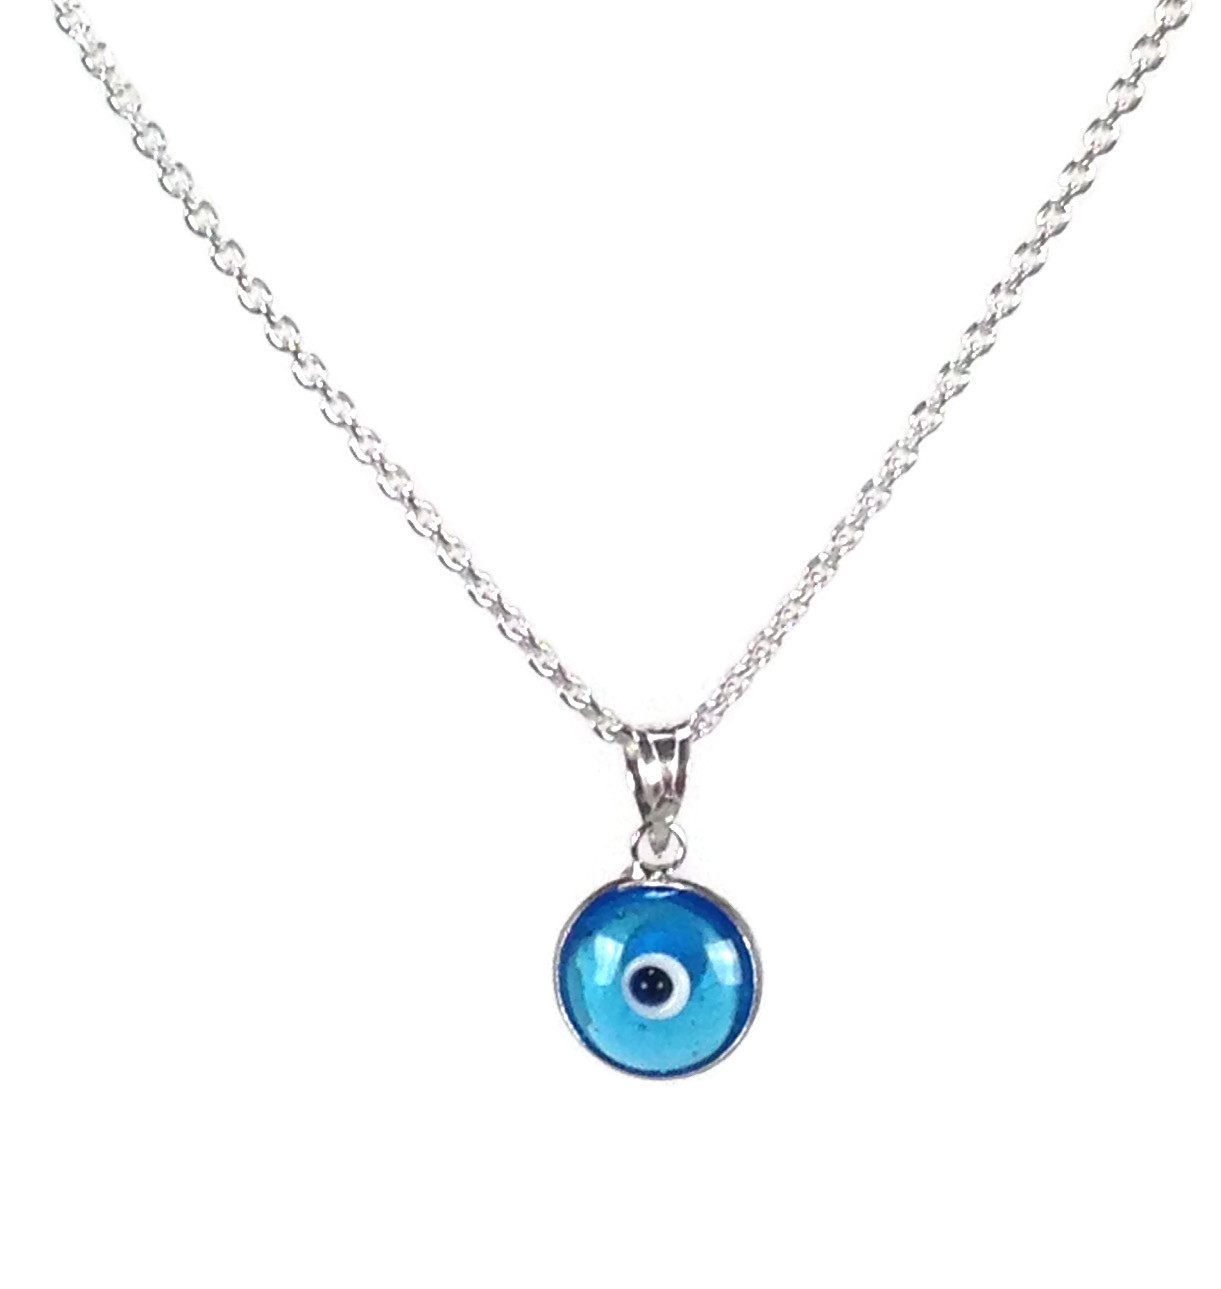 blue evil eye pendant necklace